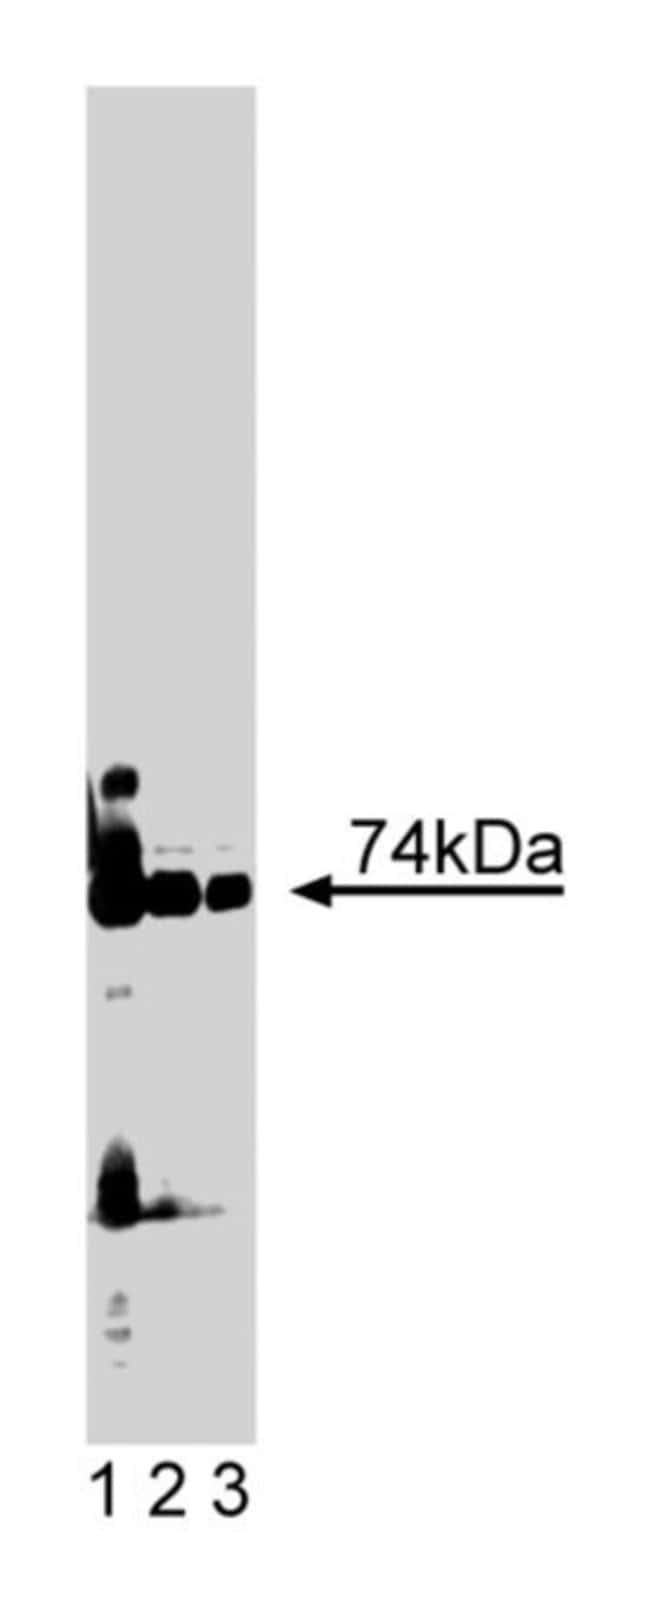 PKCλ Mouse, Unlabeled, Clone: 41, BD 150μg; Unlabeled PKCλ Mouse, Unlabeled, Clone: 41, BD